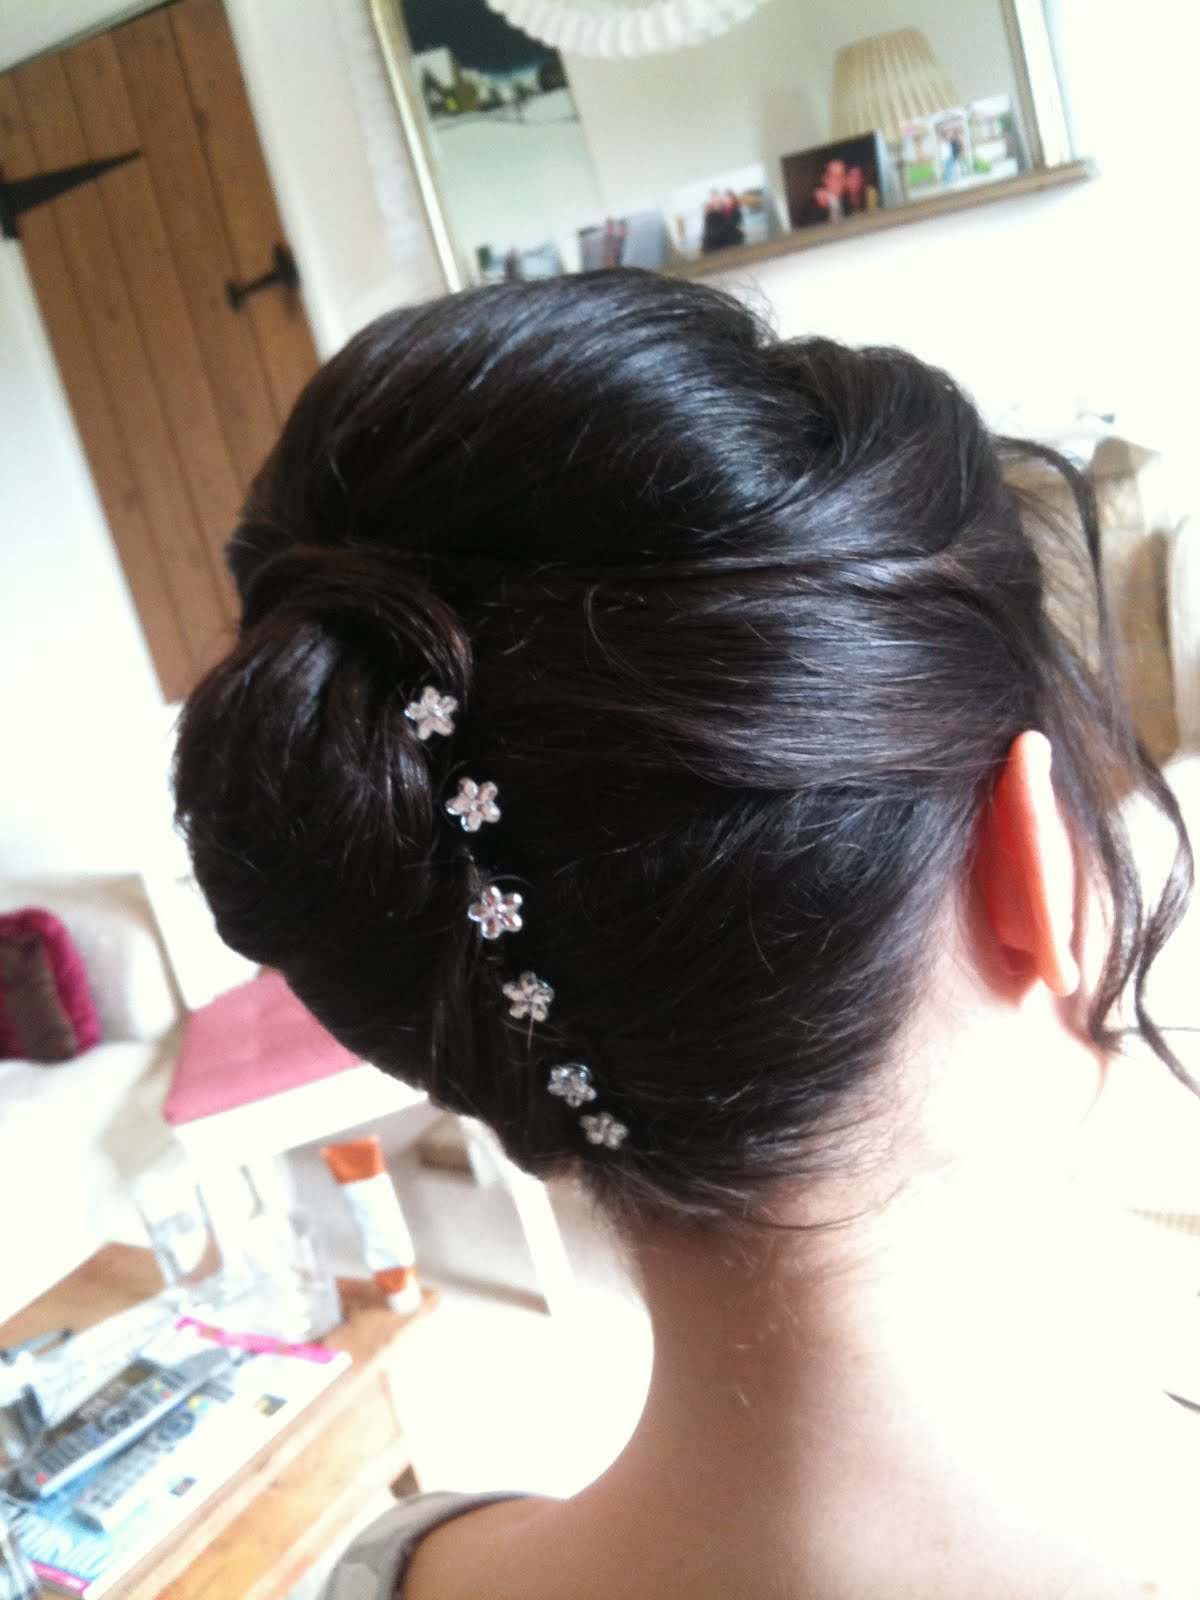 Fordham Hair Design Wedding Bridal Hair Specialist March 2011